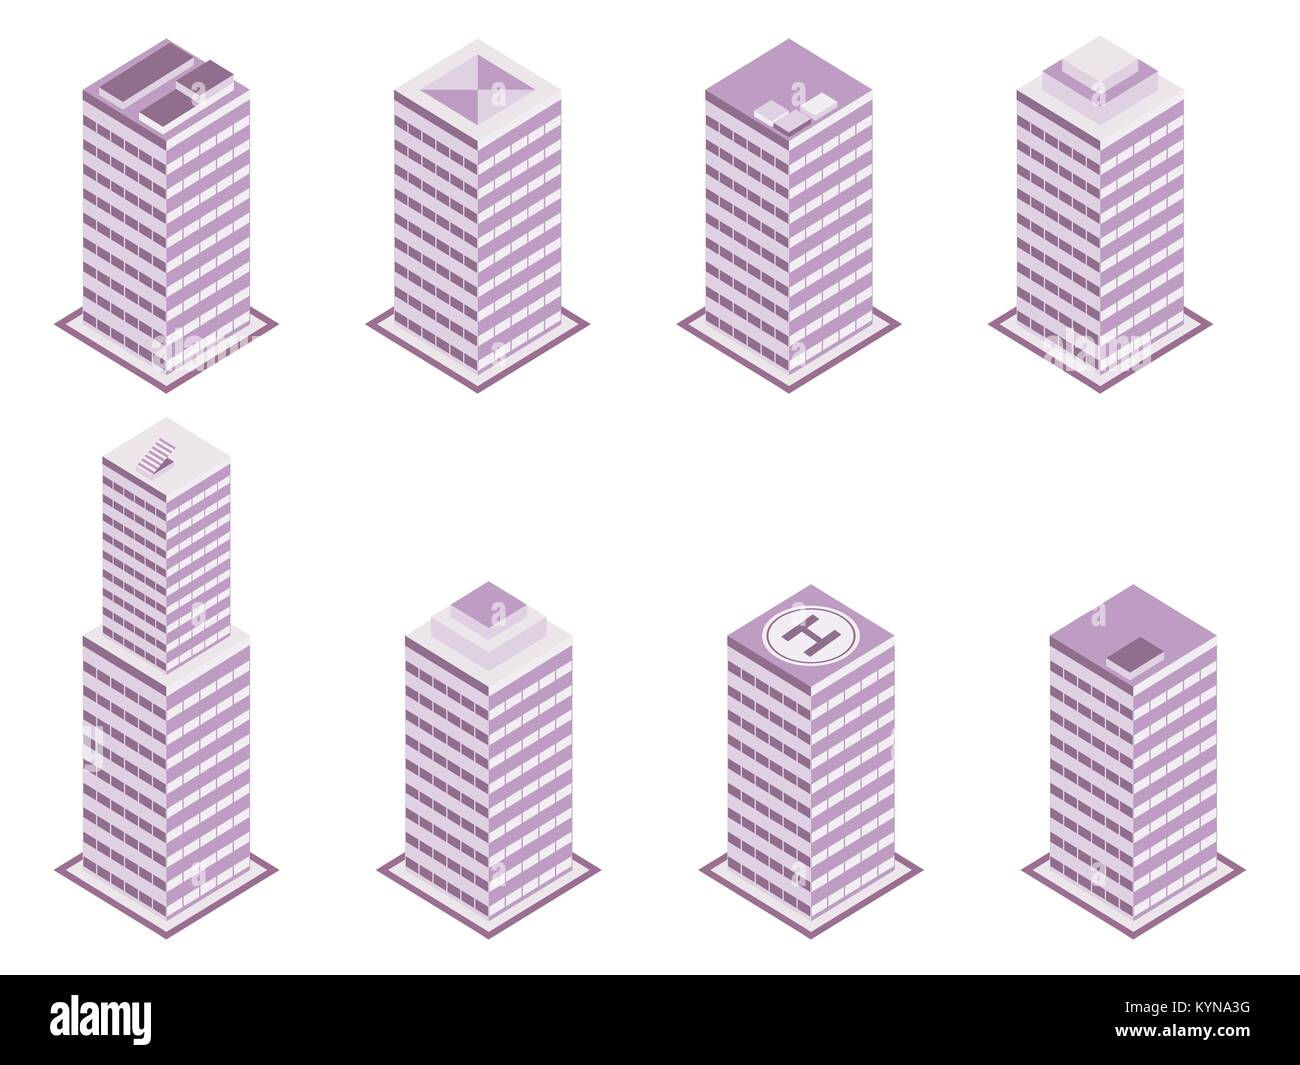 Isometric building set isolated on white background. Vector illustration Stock Vector